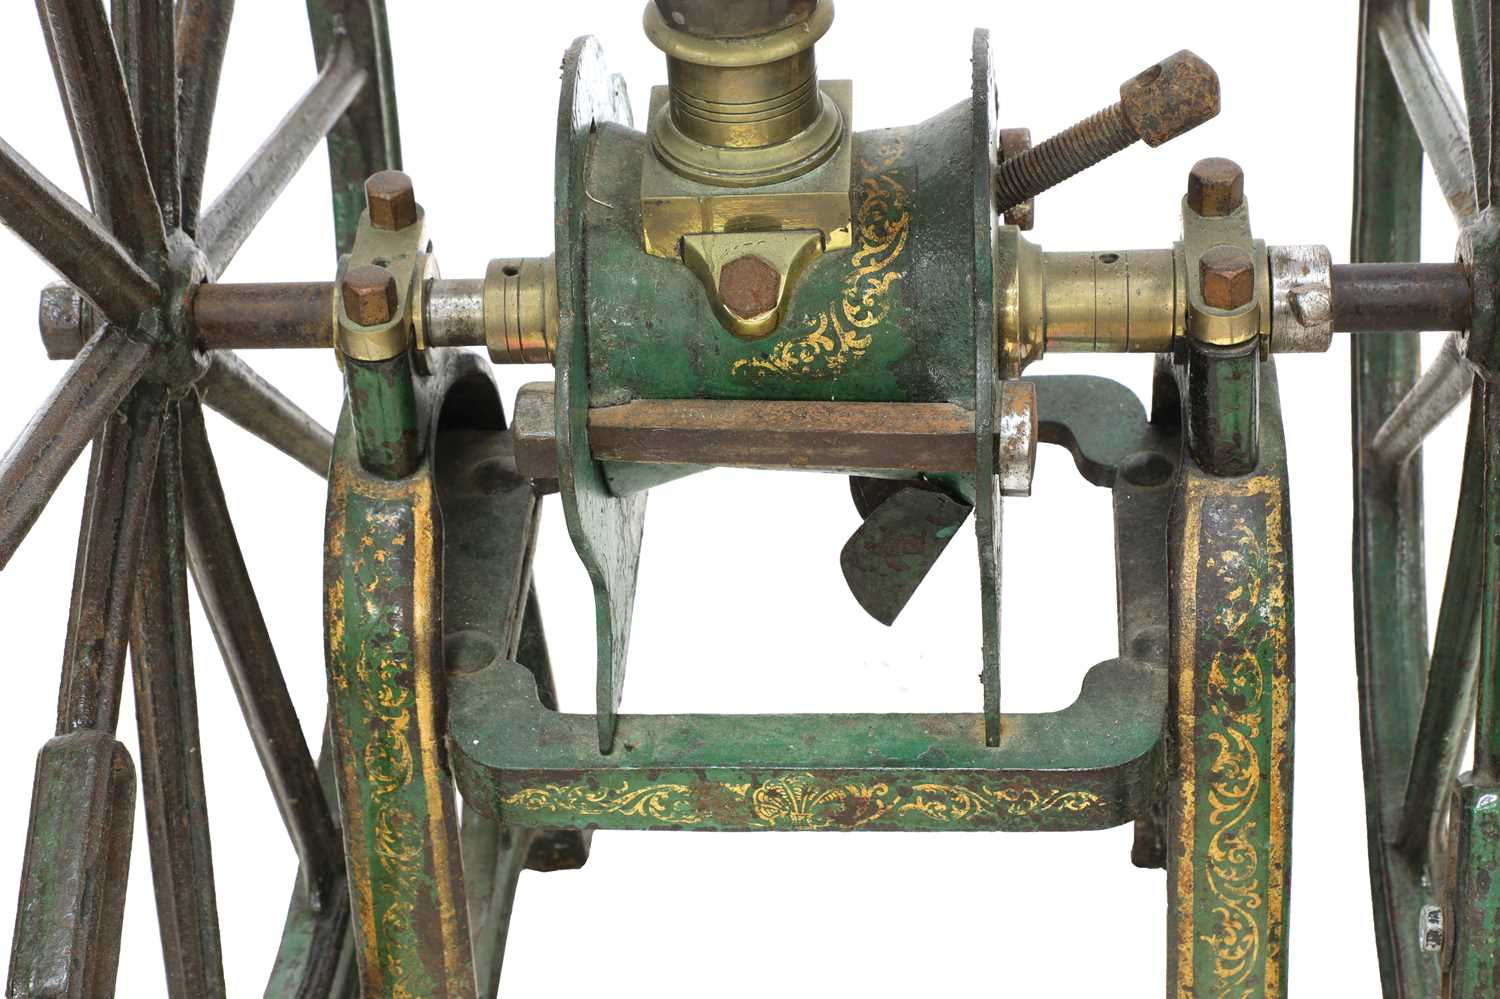 A large coffee grinder by Parnell & Sons, - Image 6 of 8